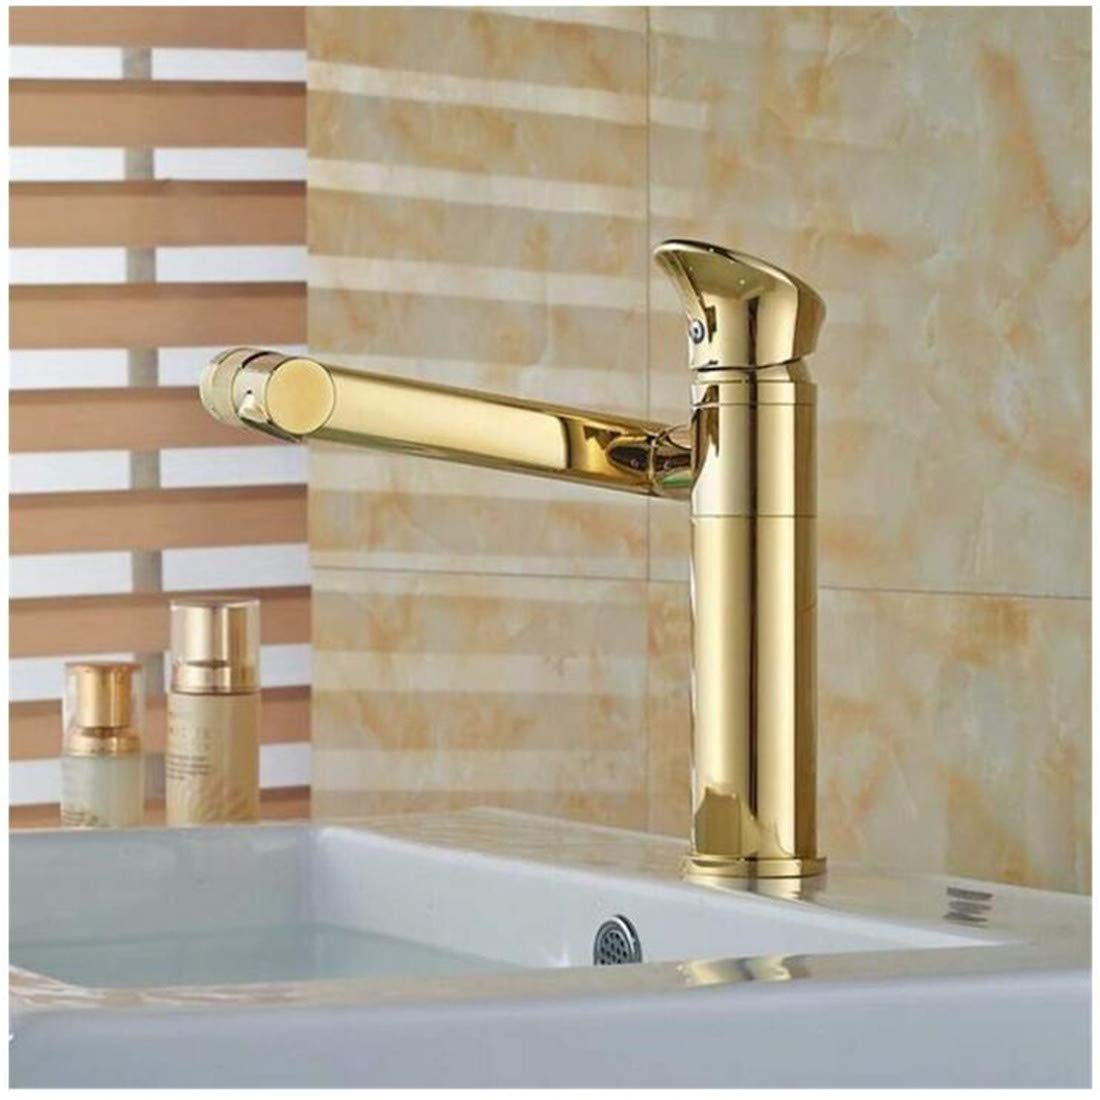 Kitchen Bath Basin Sink Bathroom Taps Washbasin Mixer Wholesale Basin Faucet Hot&Cold Tap One Hole Ctzl1785